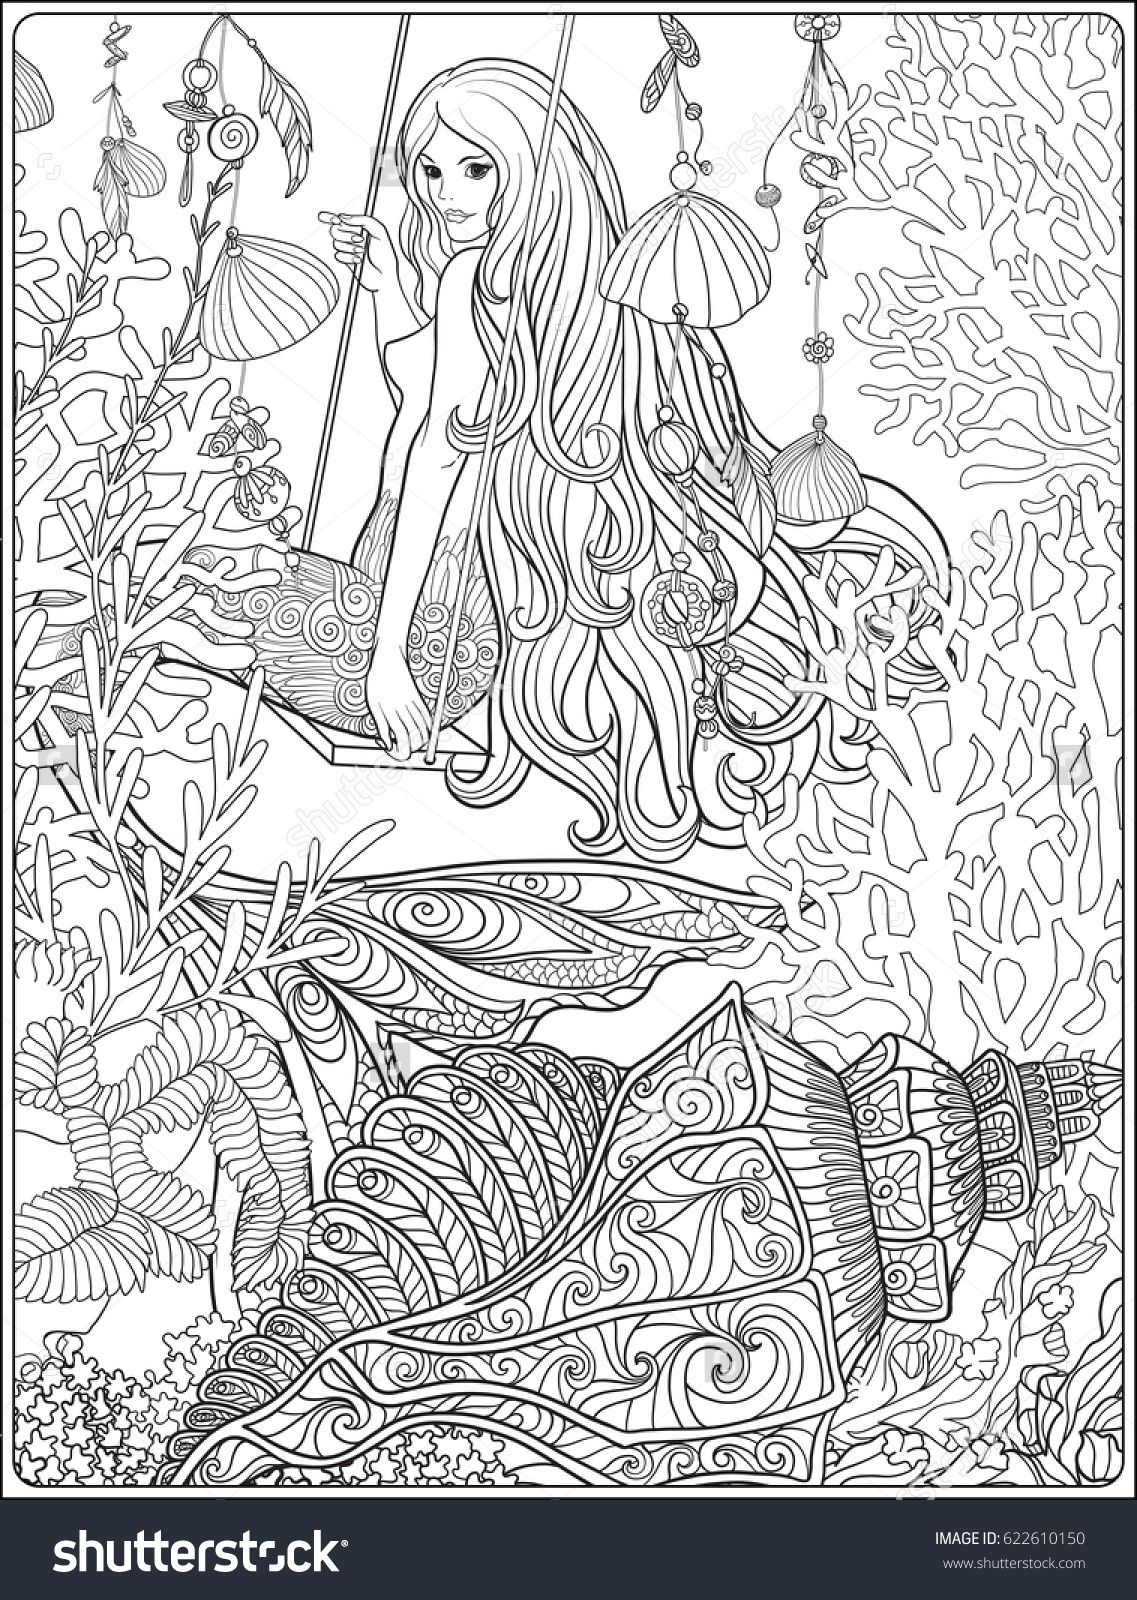 Hand Drawn Mermaid With Long Hair In Underwater World Stock Line